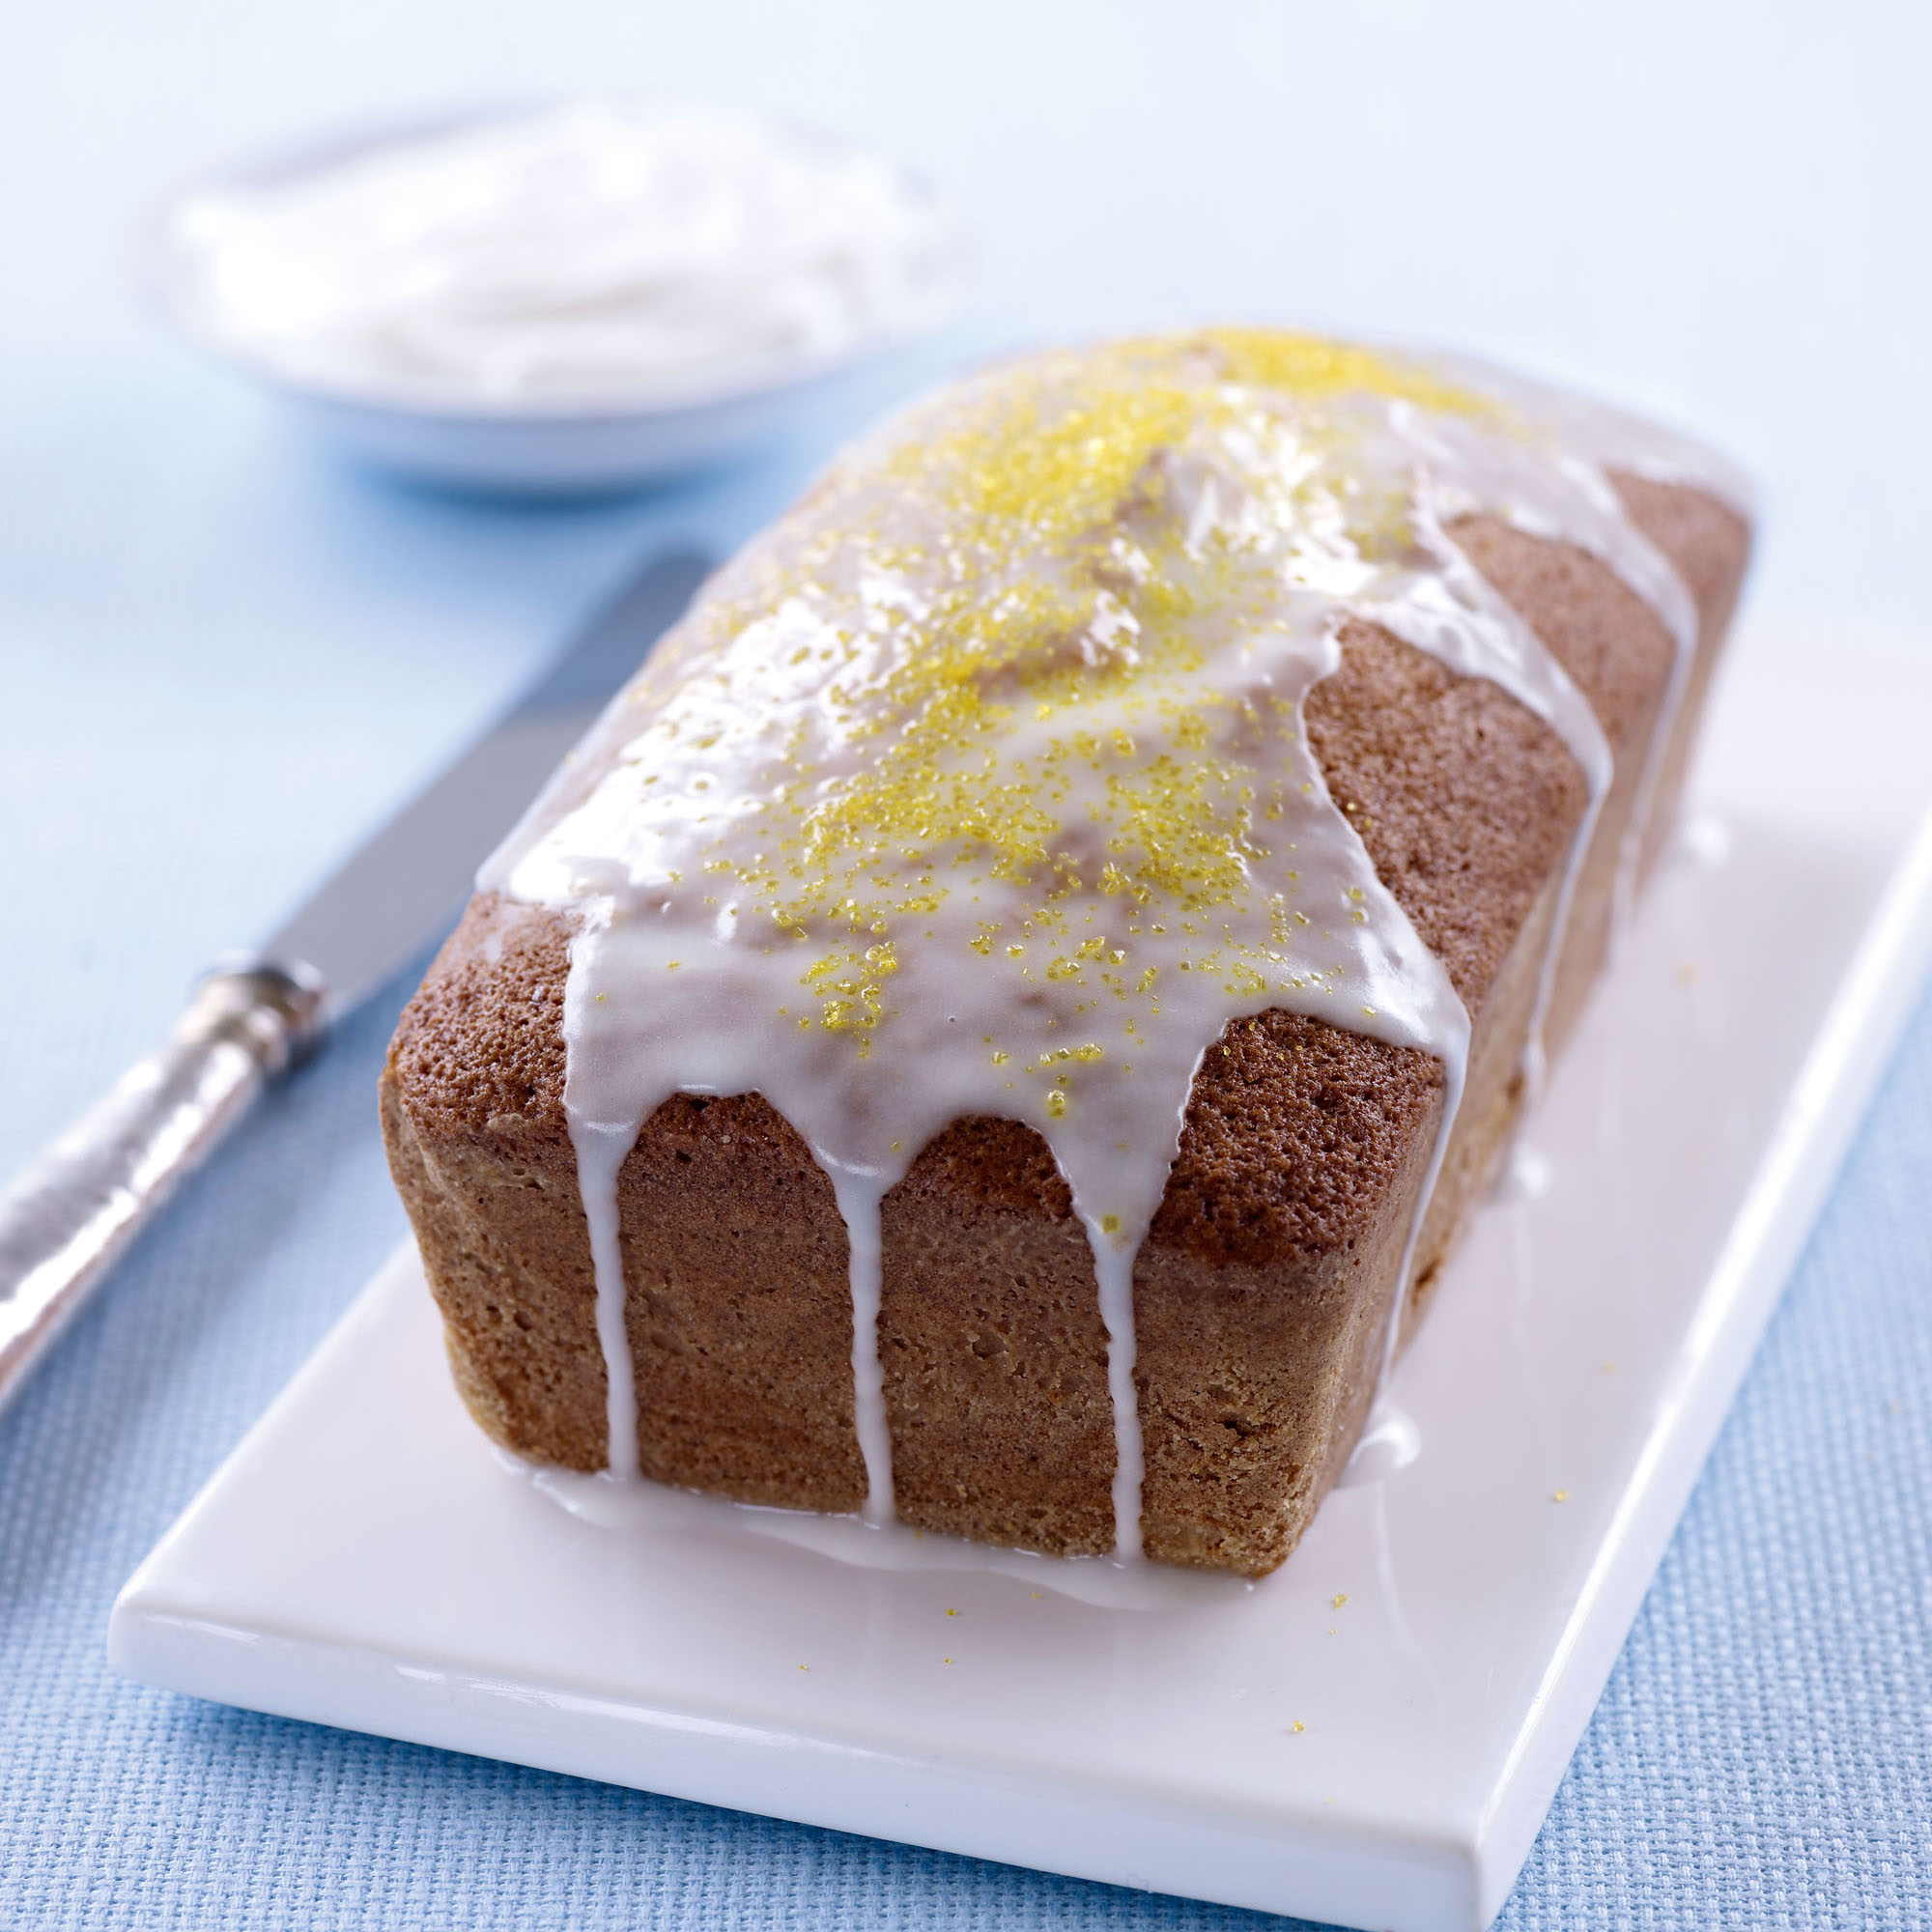 Lemon Pound Cake With Glacé Icing